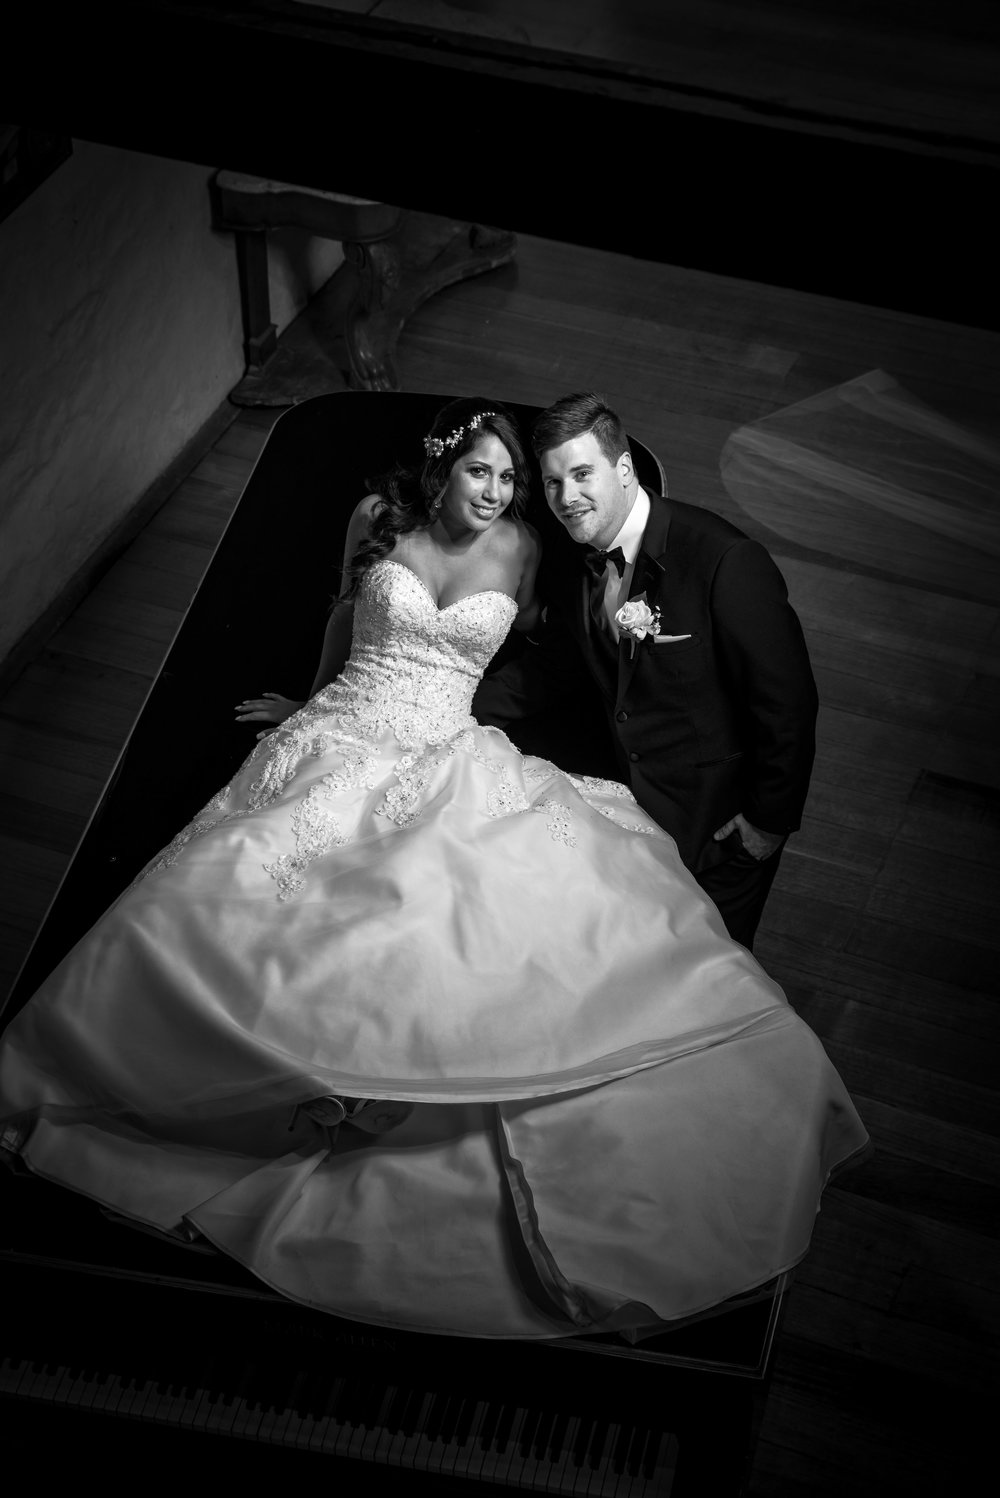 Mark Carniato Photography - Wedding Photography Melbourne (118).jpg